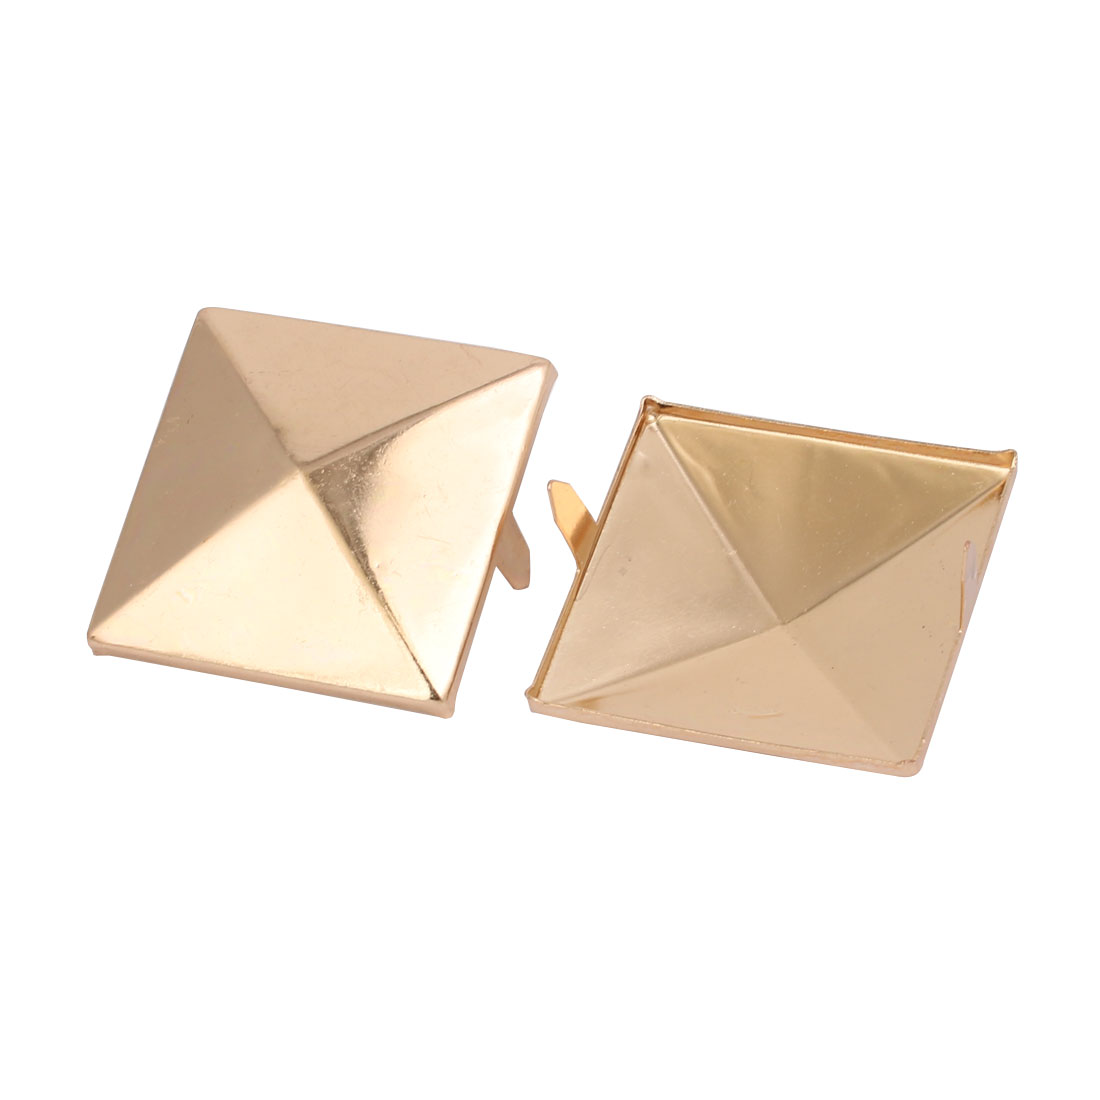 Unique Bargains 10pcs 35mm Square Shaped Paper Brad Light Gold Tone for Scrapbooking DIY Craft - image 1 de 2